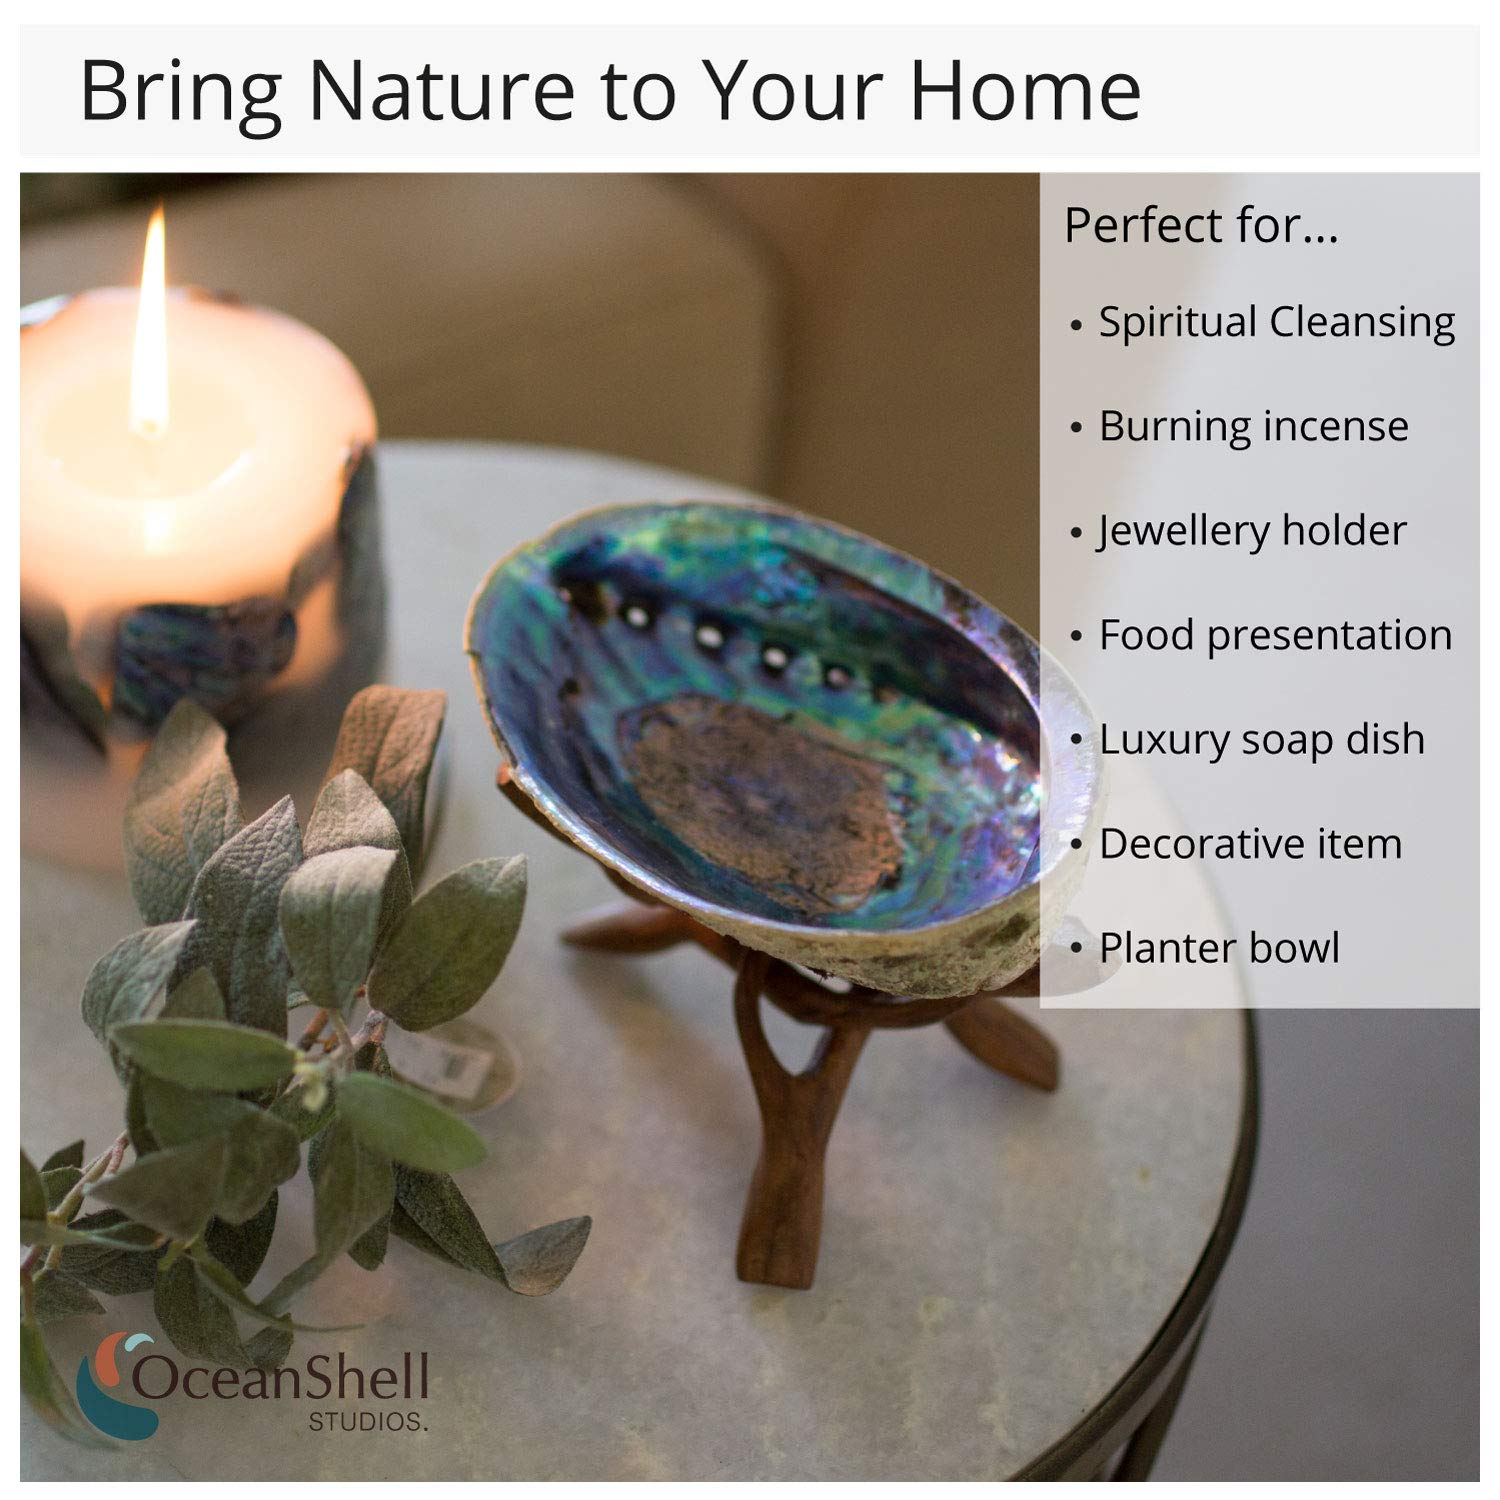 Ocean Shell Studios Premium Natural Abalone Shell Extra Large 6''- 6.5'' with Wooden Stand, for Smudging, Cleansing Home, Meditation, Shell Crafts, Home Décor, 100% Natural, Gift Box by Ocean Shell Studios (Image #5)